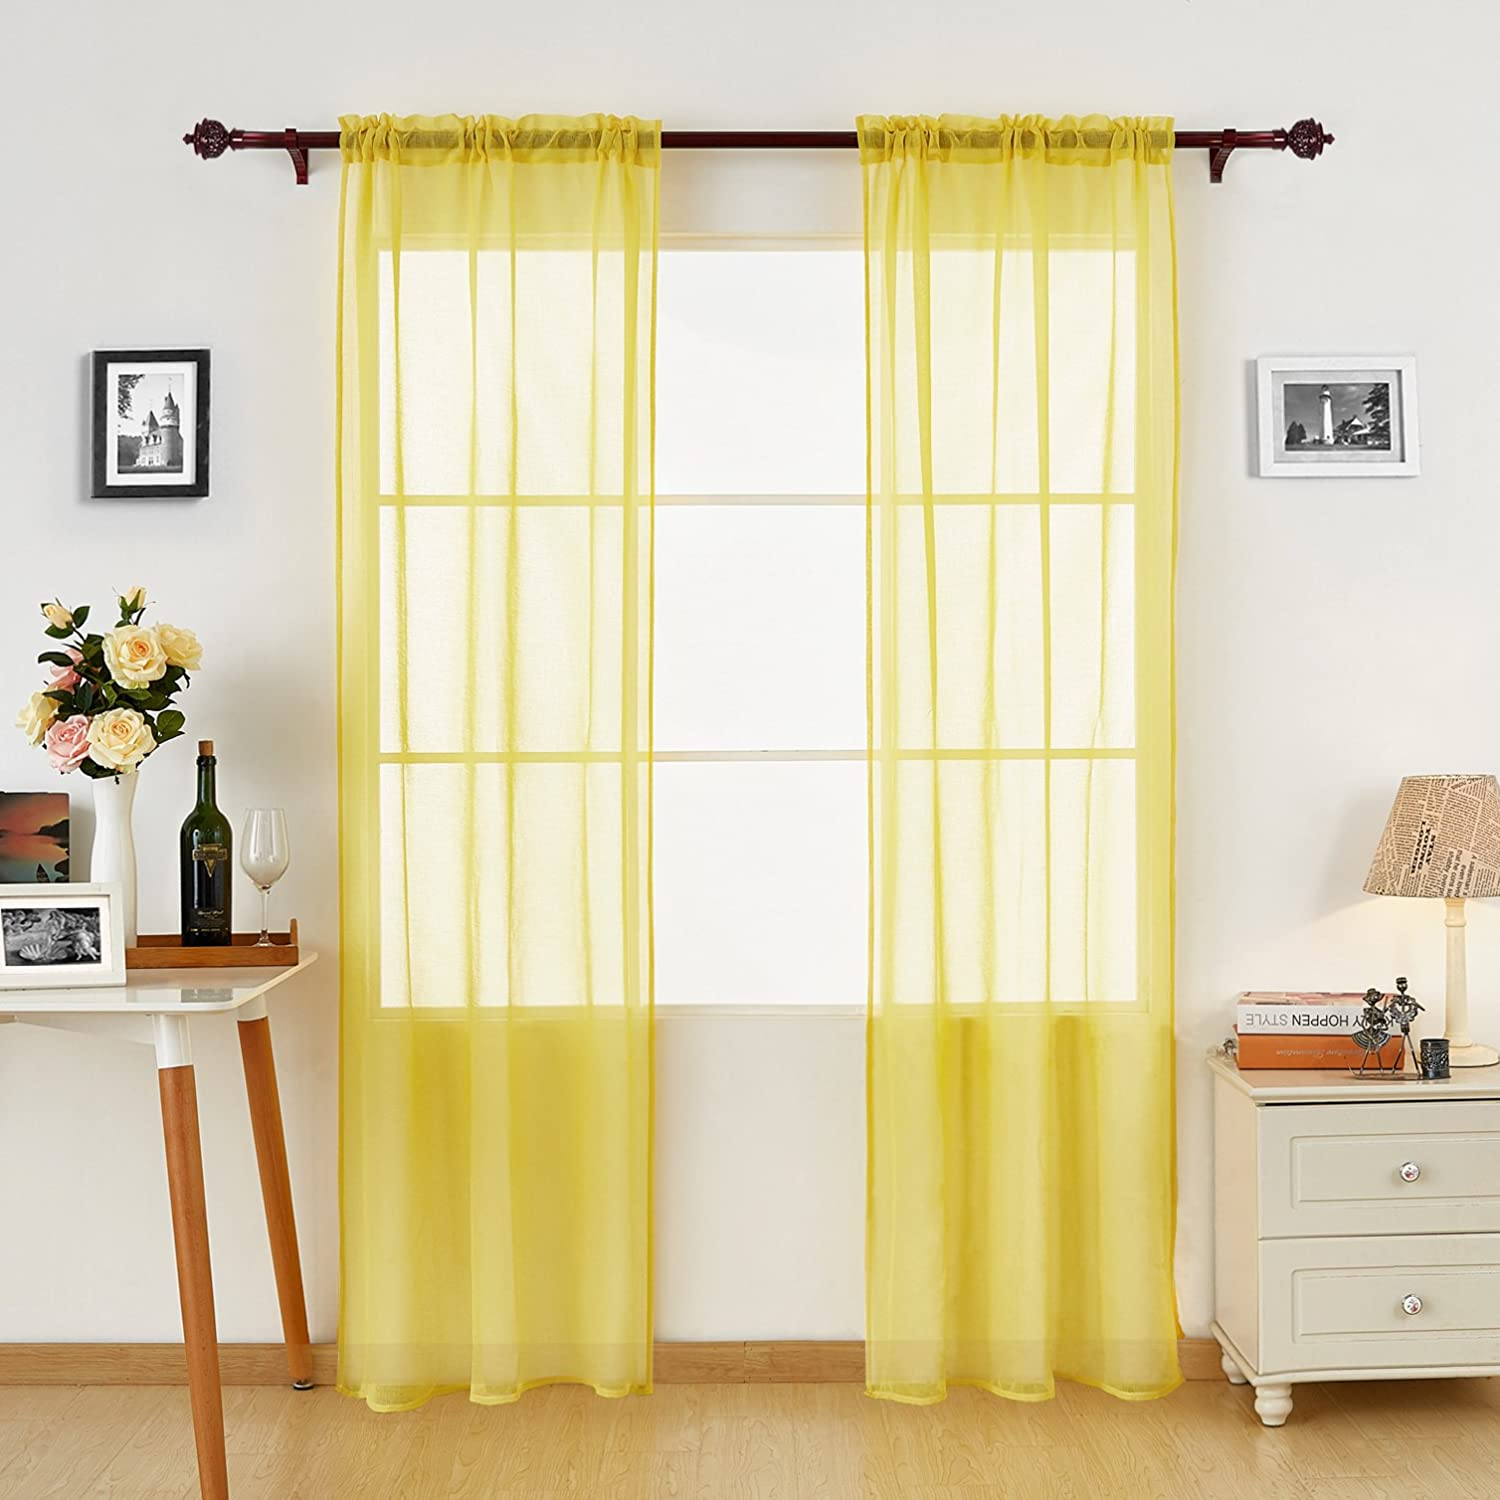 Deconovo Linen Look Rod Pocket Transparent Curtains Sheer Drapes for Baby Room